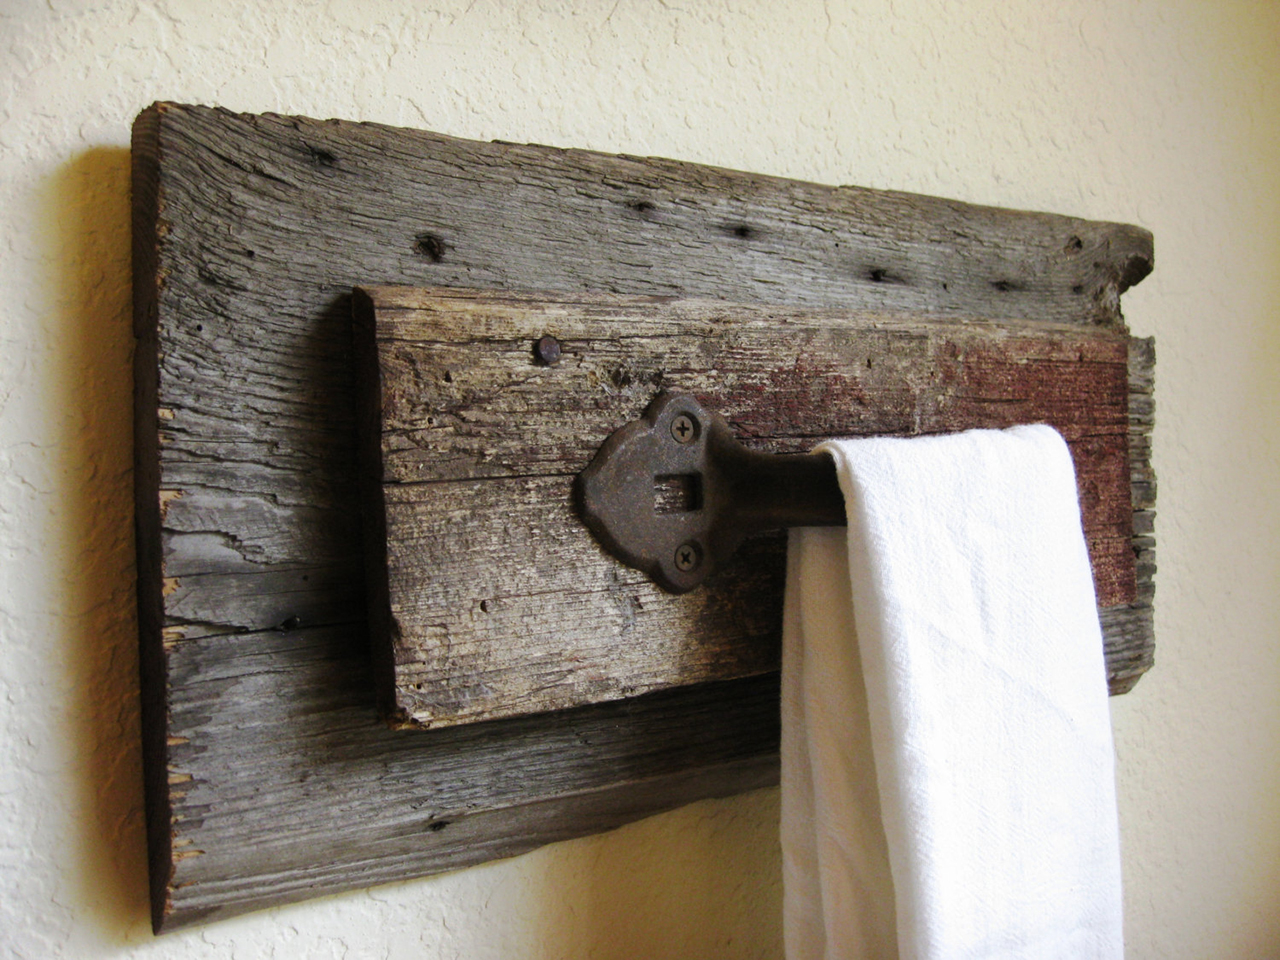 Rustic bathroom decor - Reclaimed Hardware Towel Hook Source Etsy Com Rustic Bathroom Decor